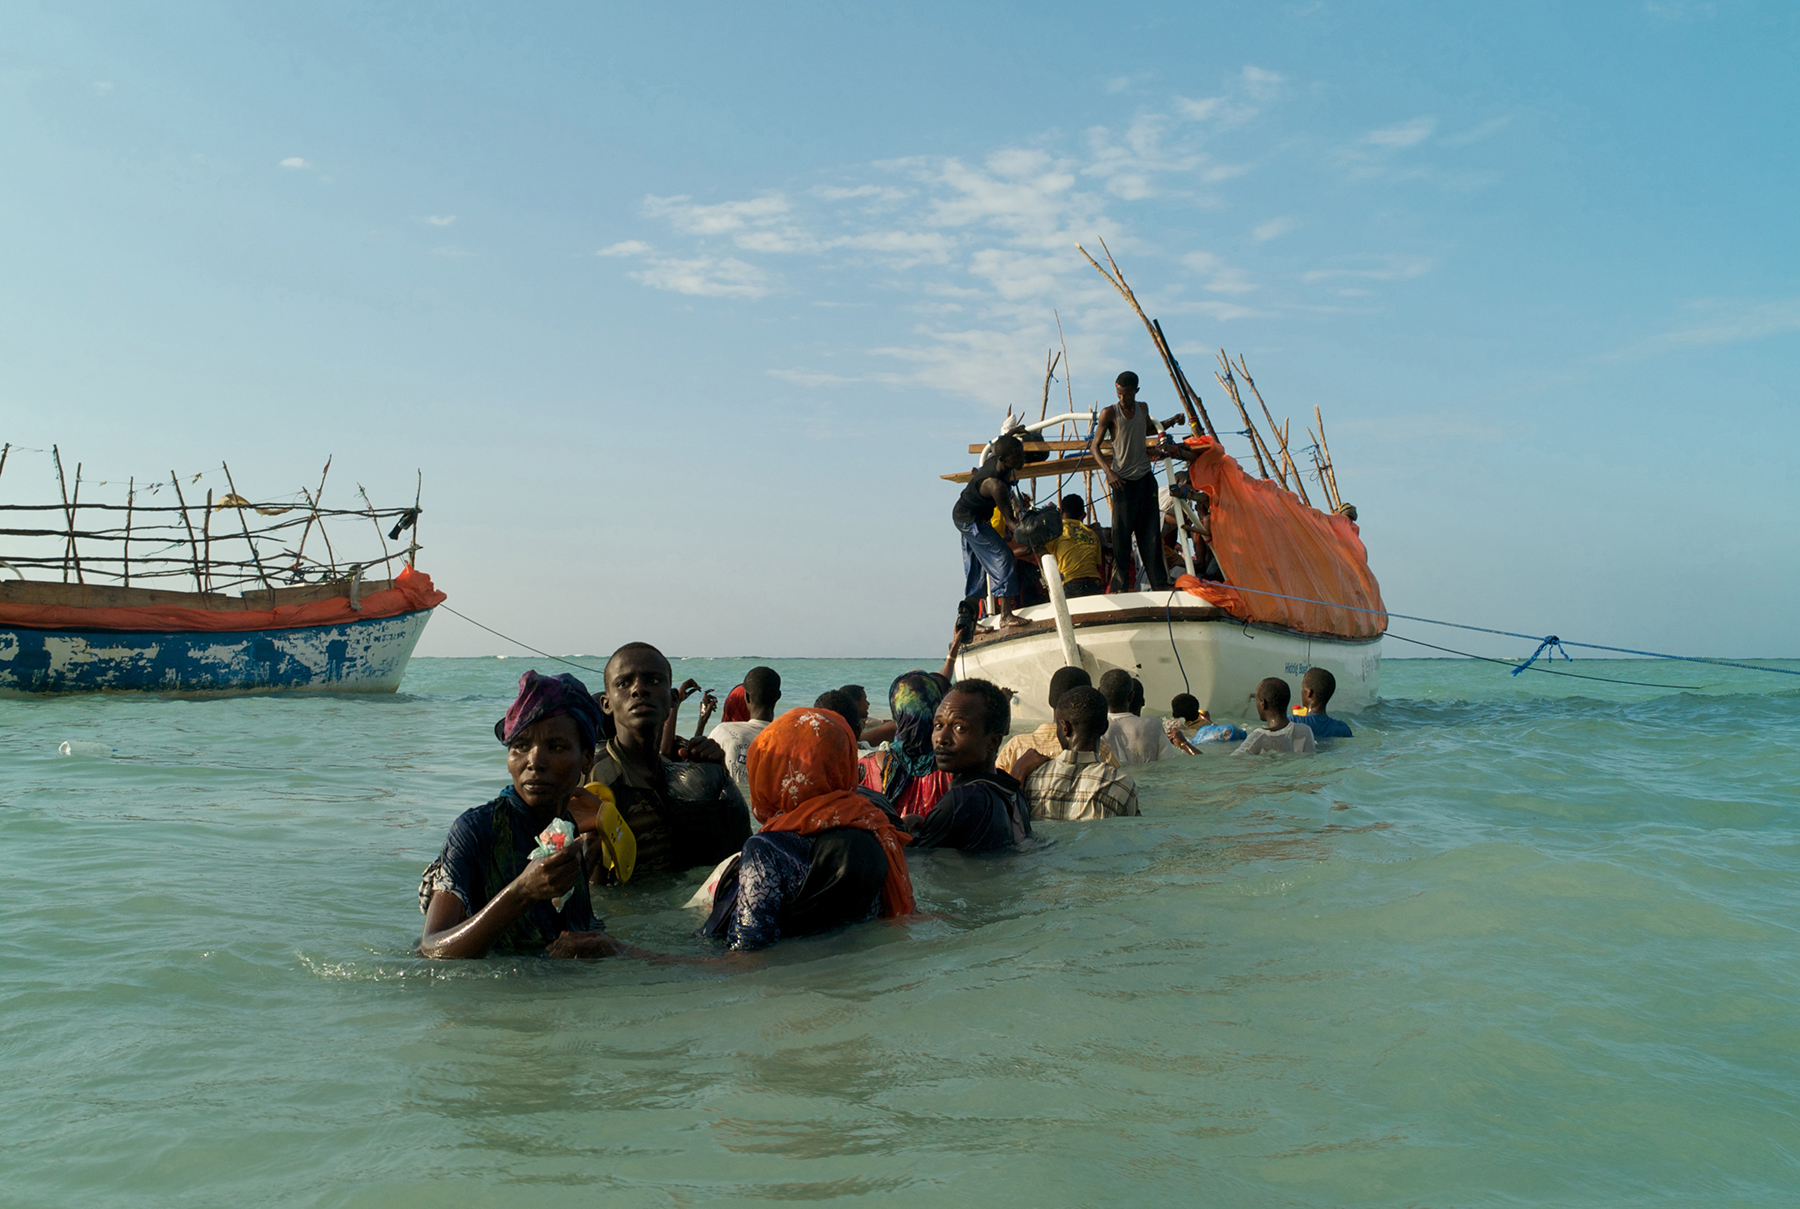 Shimbiro, Somalia, November, 2007. Standing in choppy shoulder deep water, Somali refugees look back anxiously from the sea as they try to locate friends and relatives left behind on Shimbiro Beach. Preparing to board one of three smuggler's boats that will depart simultaneously for Yemen, many of the passengers have become separated from those that they had hoped to make this high-risk journey with.